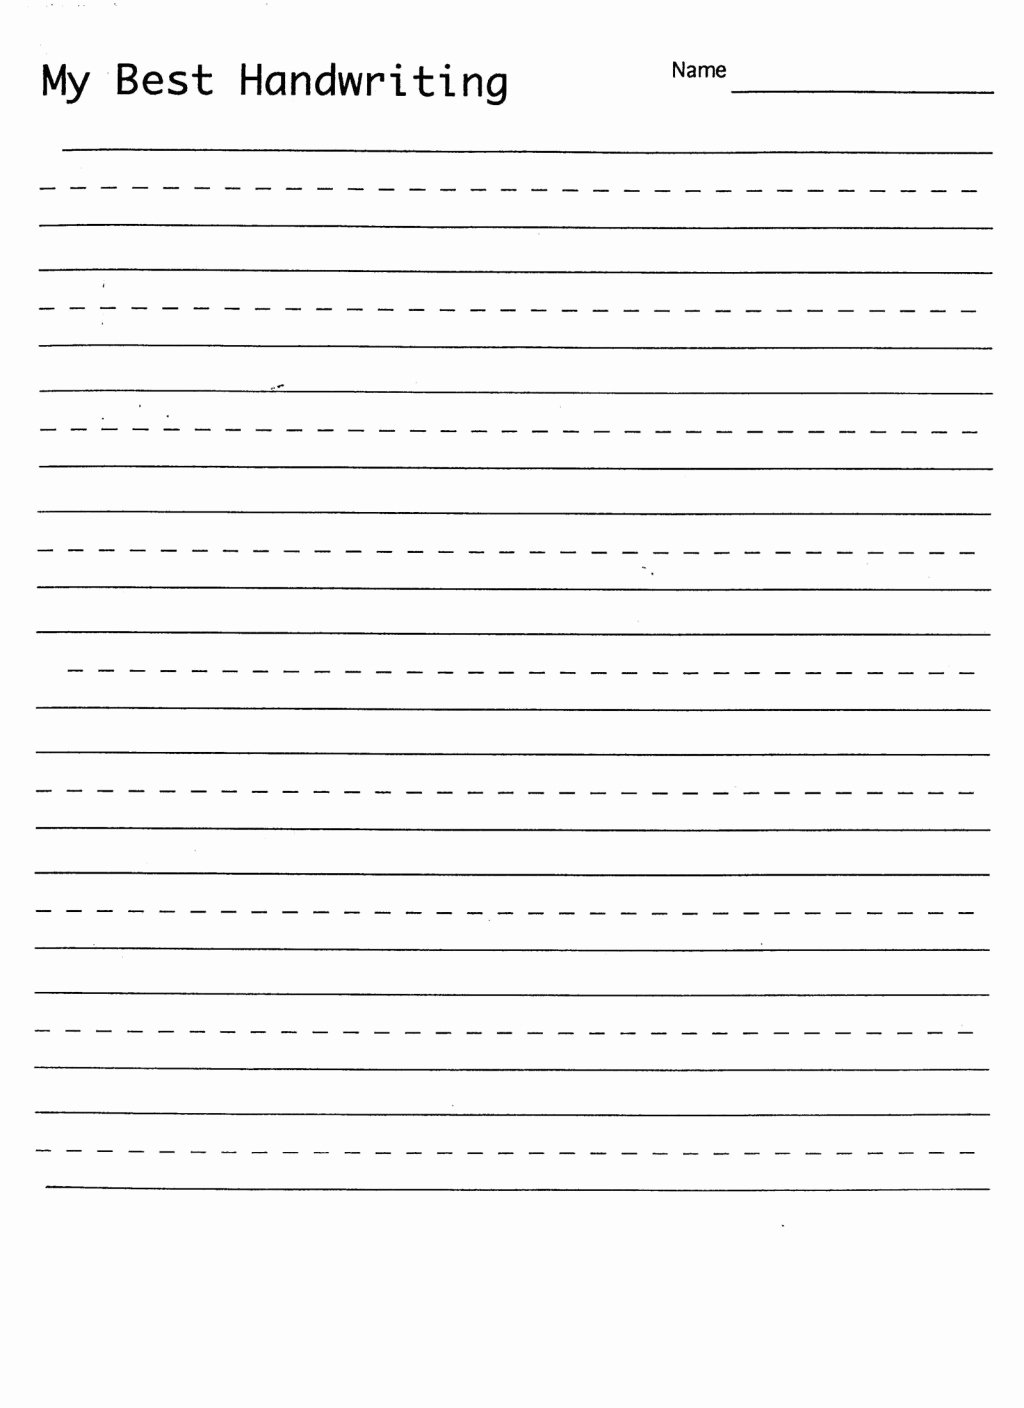 Handwriting Worksheets For Preschoolers